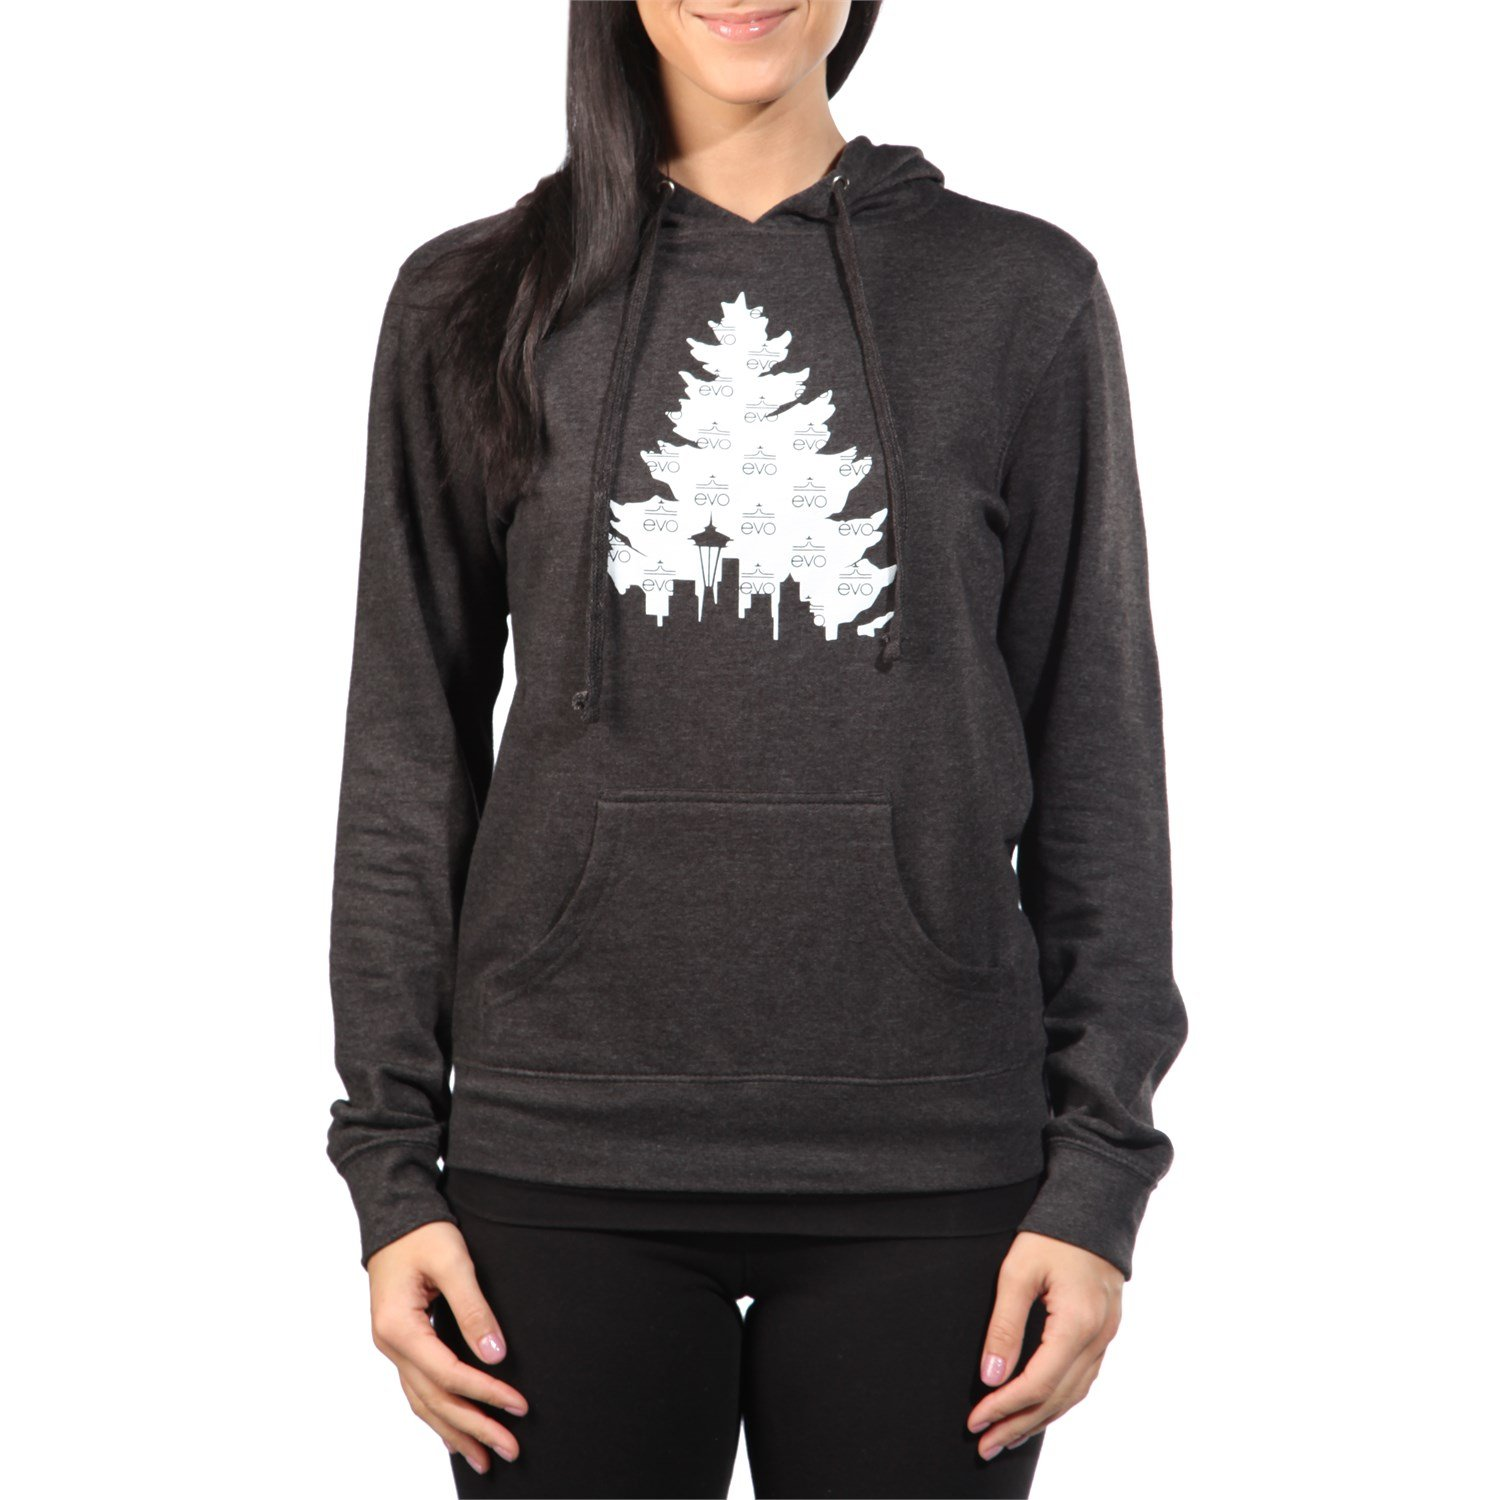 Casual Industrees evo J Tree Pullover Hoodie - Women's